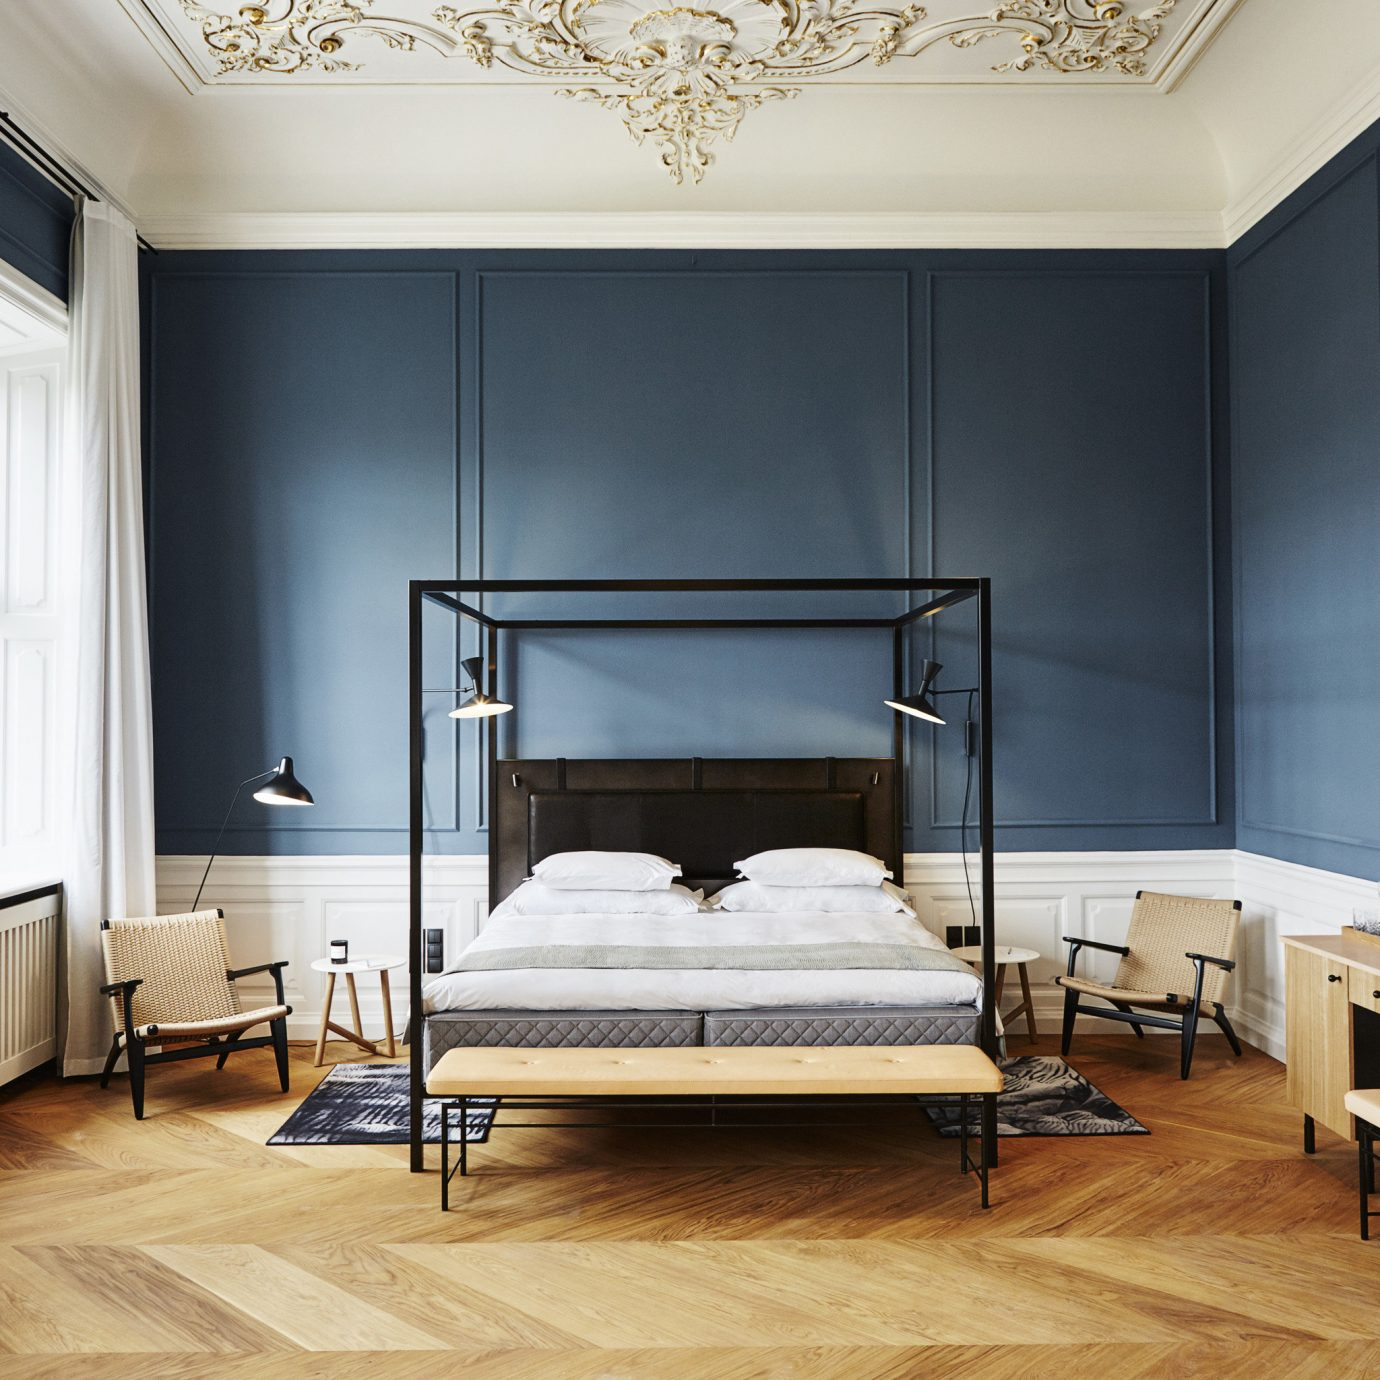 Architecture Boutique Hotels Copenhagen Denmark Design Fall Travel Hotels Luxury Travel News Trip Ideas floor indoor wall room window furniture interior design bed bed frame ceiling Bedroom wood flooring flooring living room interior designer mattress hardwood